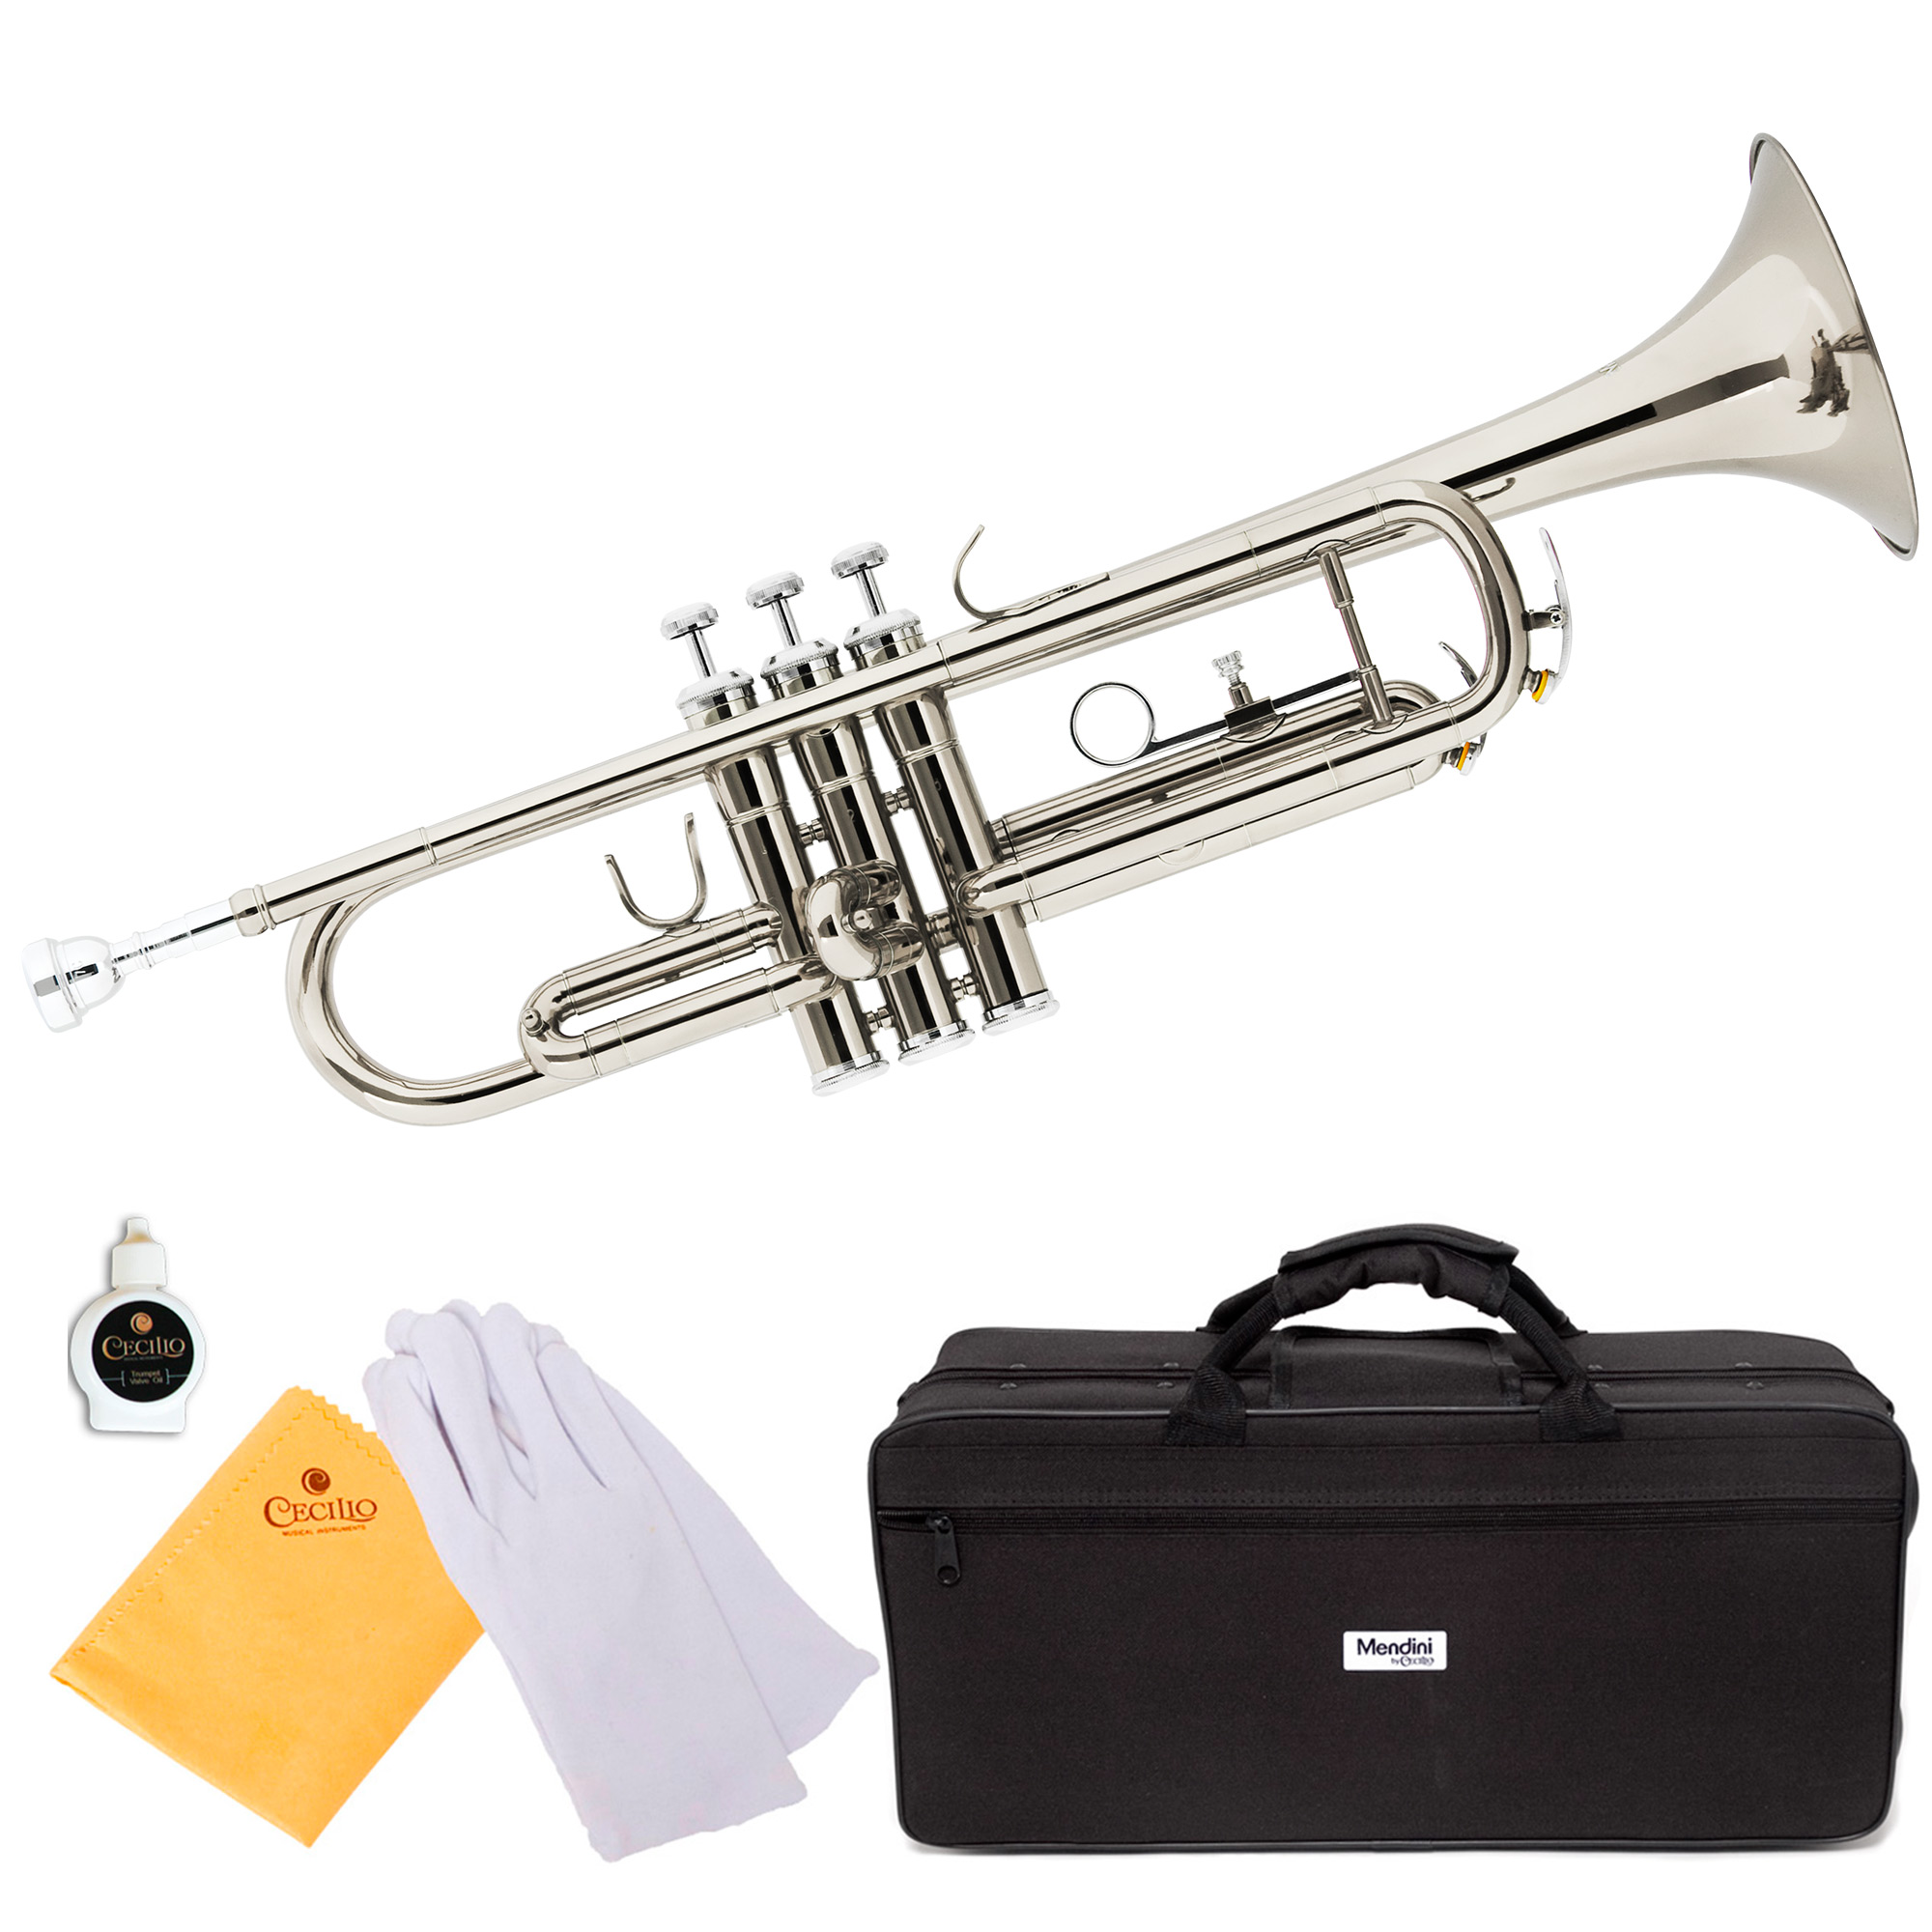 Mendini by Cecilio MTT-N Silver Nickel Plated Bb Trumpet with Durable Deluxe Case and 1 Year Warranty